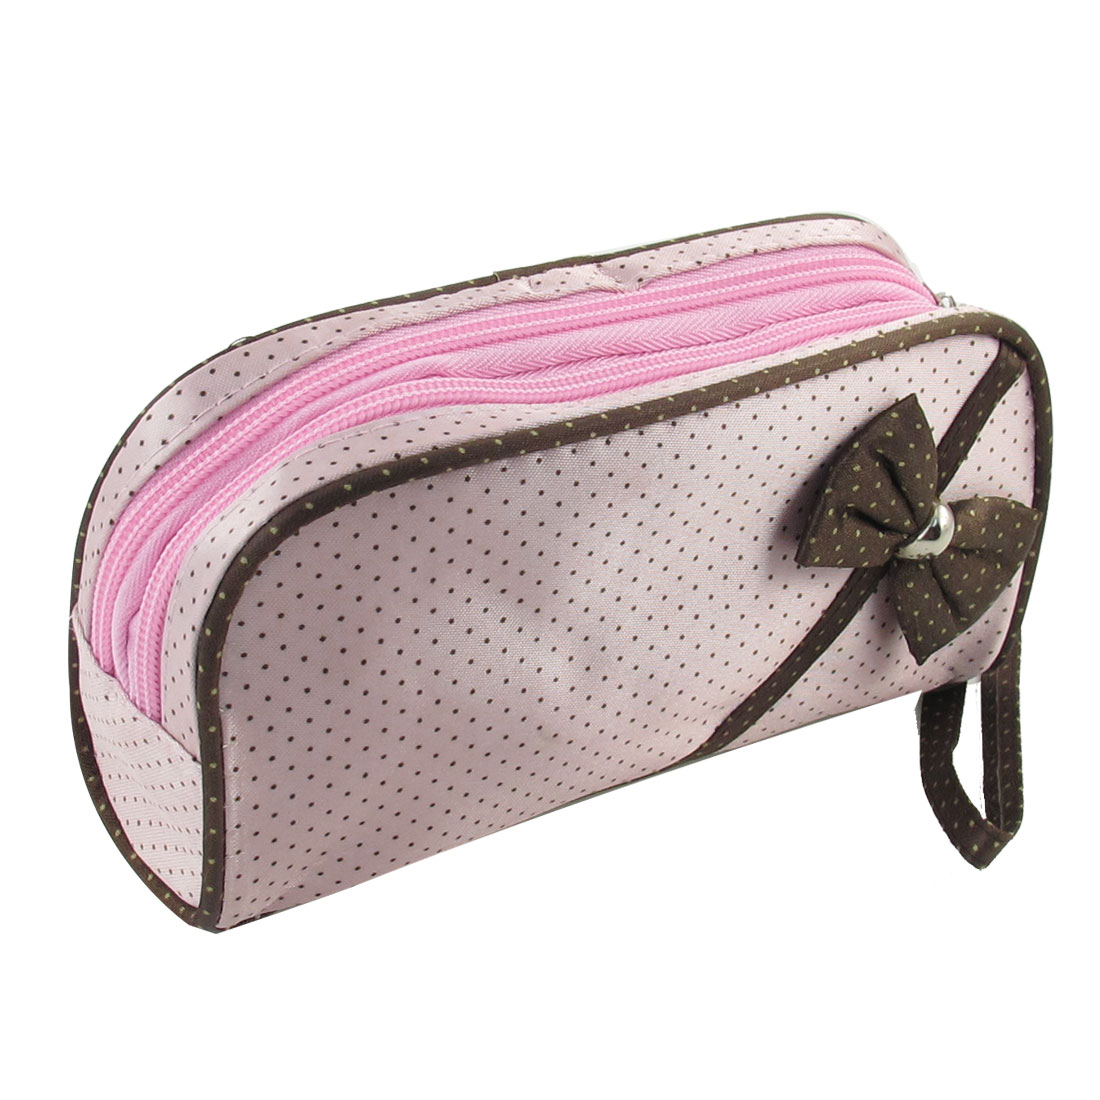 Dual Zipper Brown Bowknot Pattern Cosmetic Bag Makeup Purse Pink